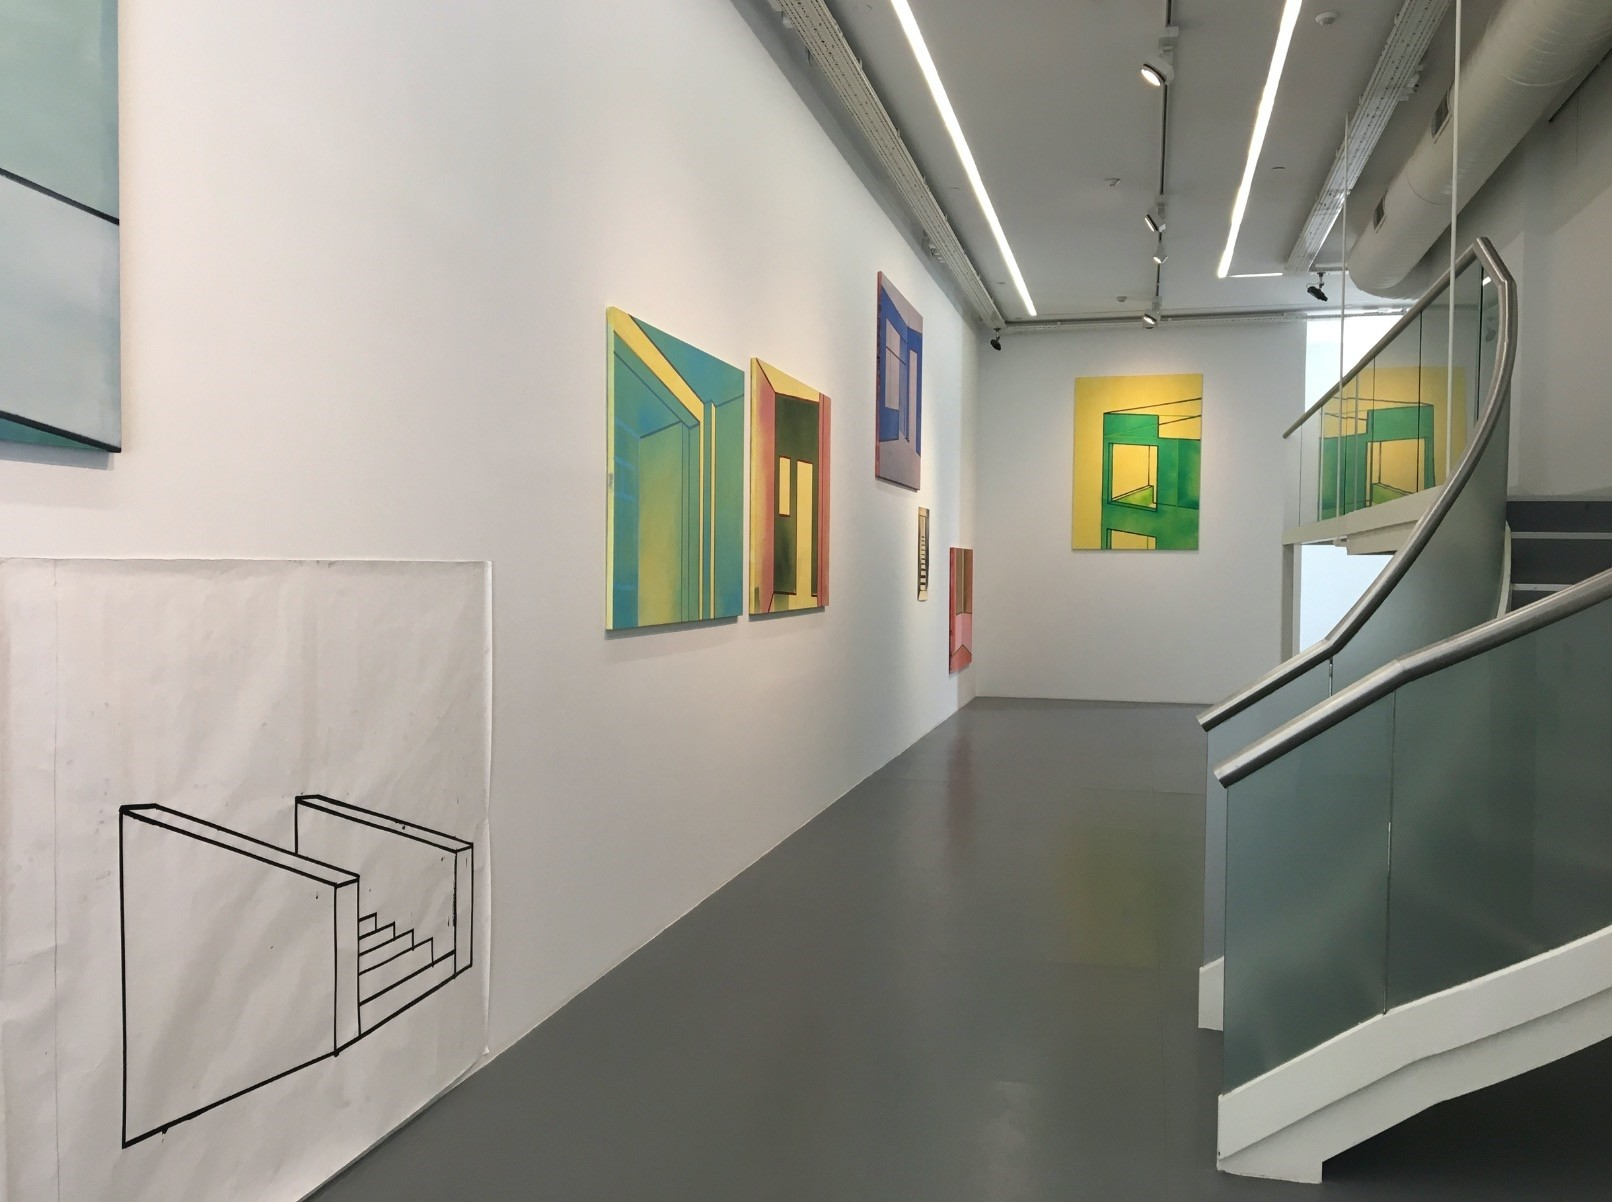 Arter curator Eda Berkmen transformed the ground floor of the u0130stiklal Avenue gallery for its first painting show in close collaboration with the artist.